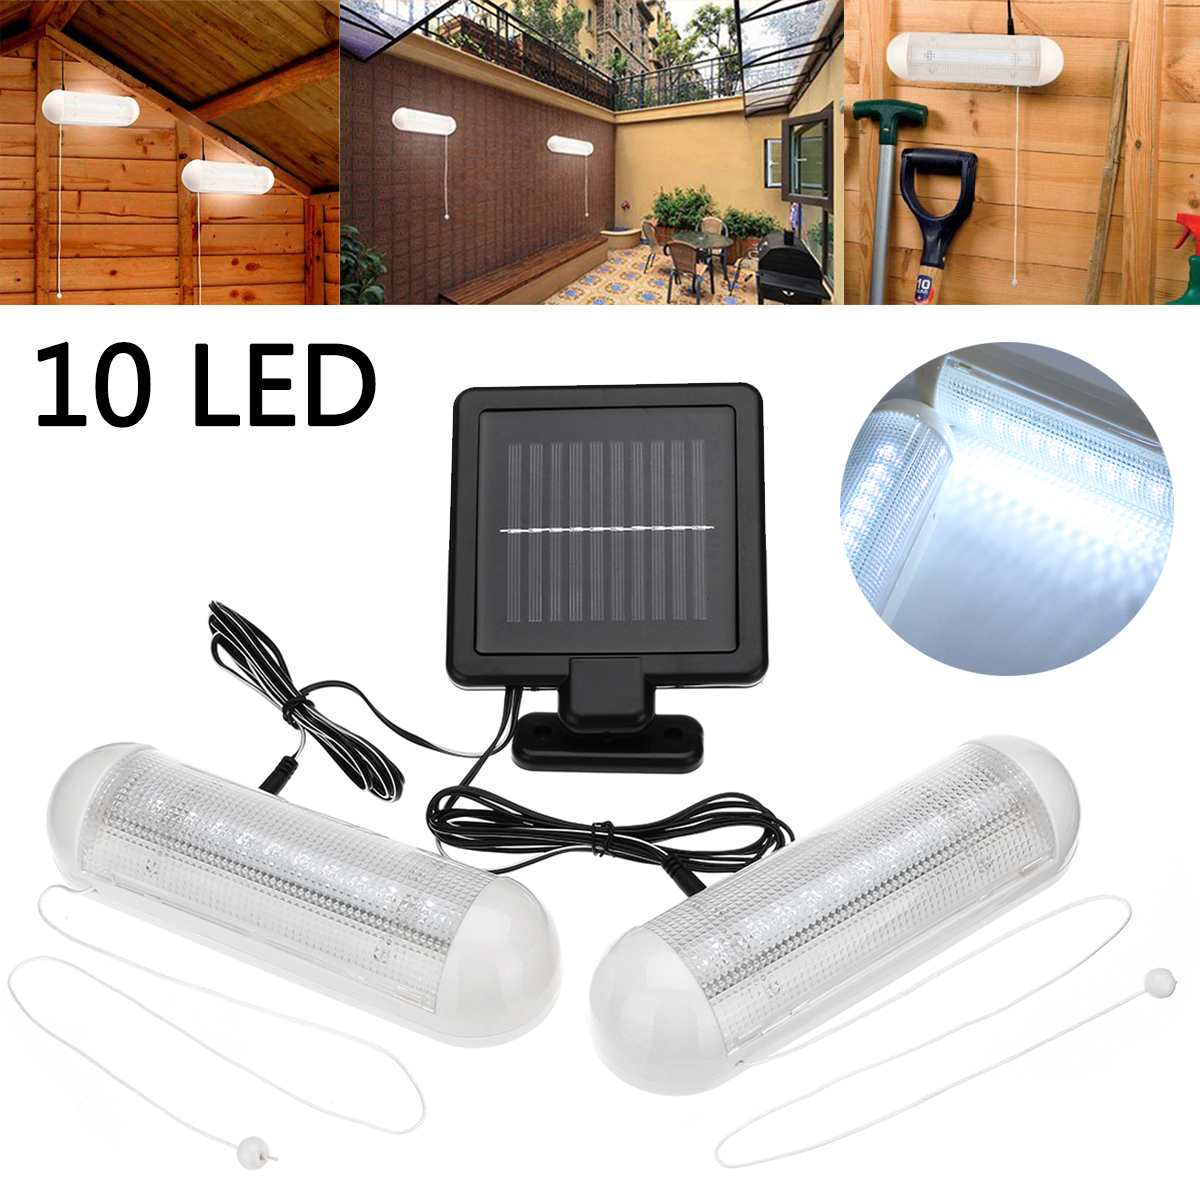 1Set LED Solar Shed Light Garden Yard Wall-mounted Lamp Waterproof 1 Panel + 2 Lights Outdoor 10 LED Pull Lamp Light